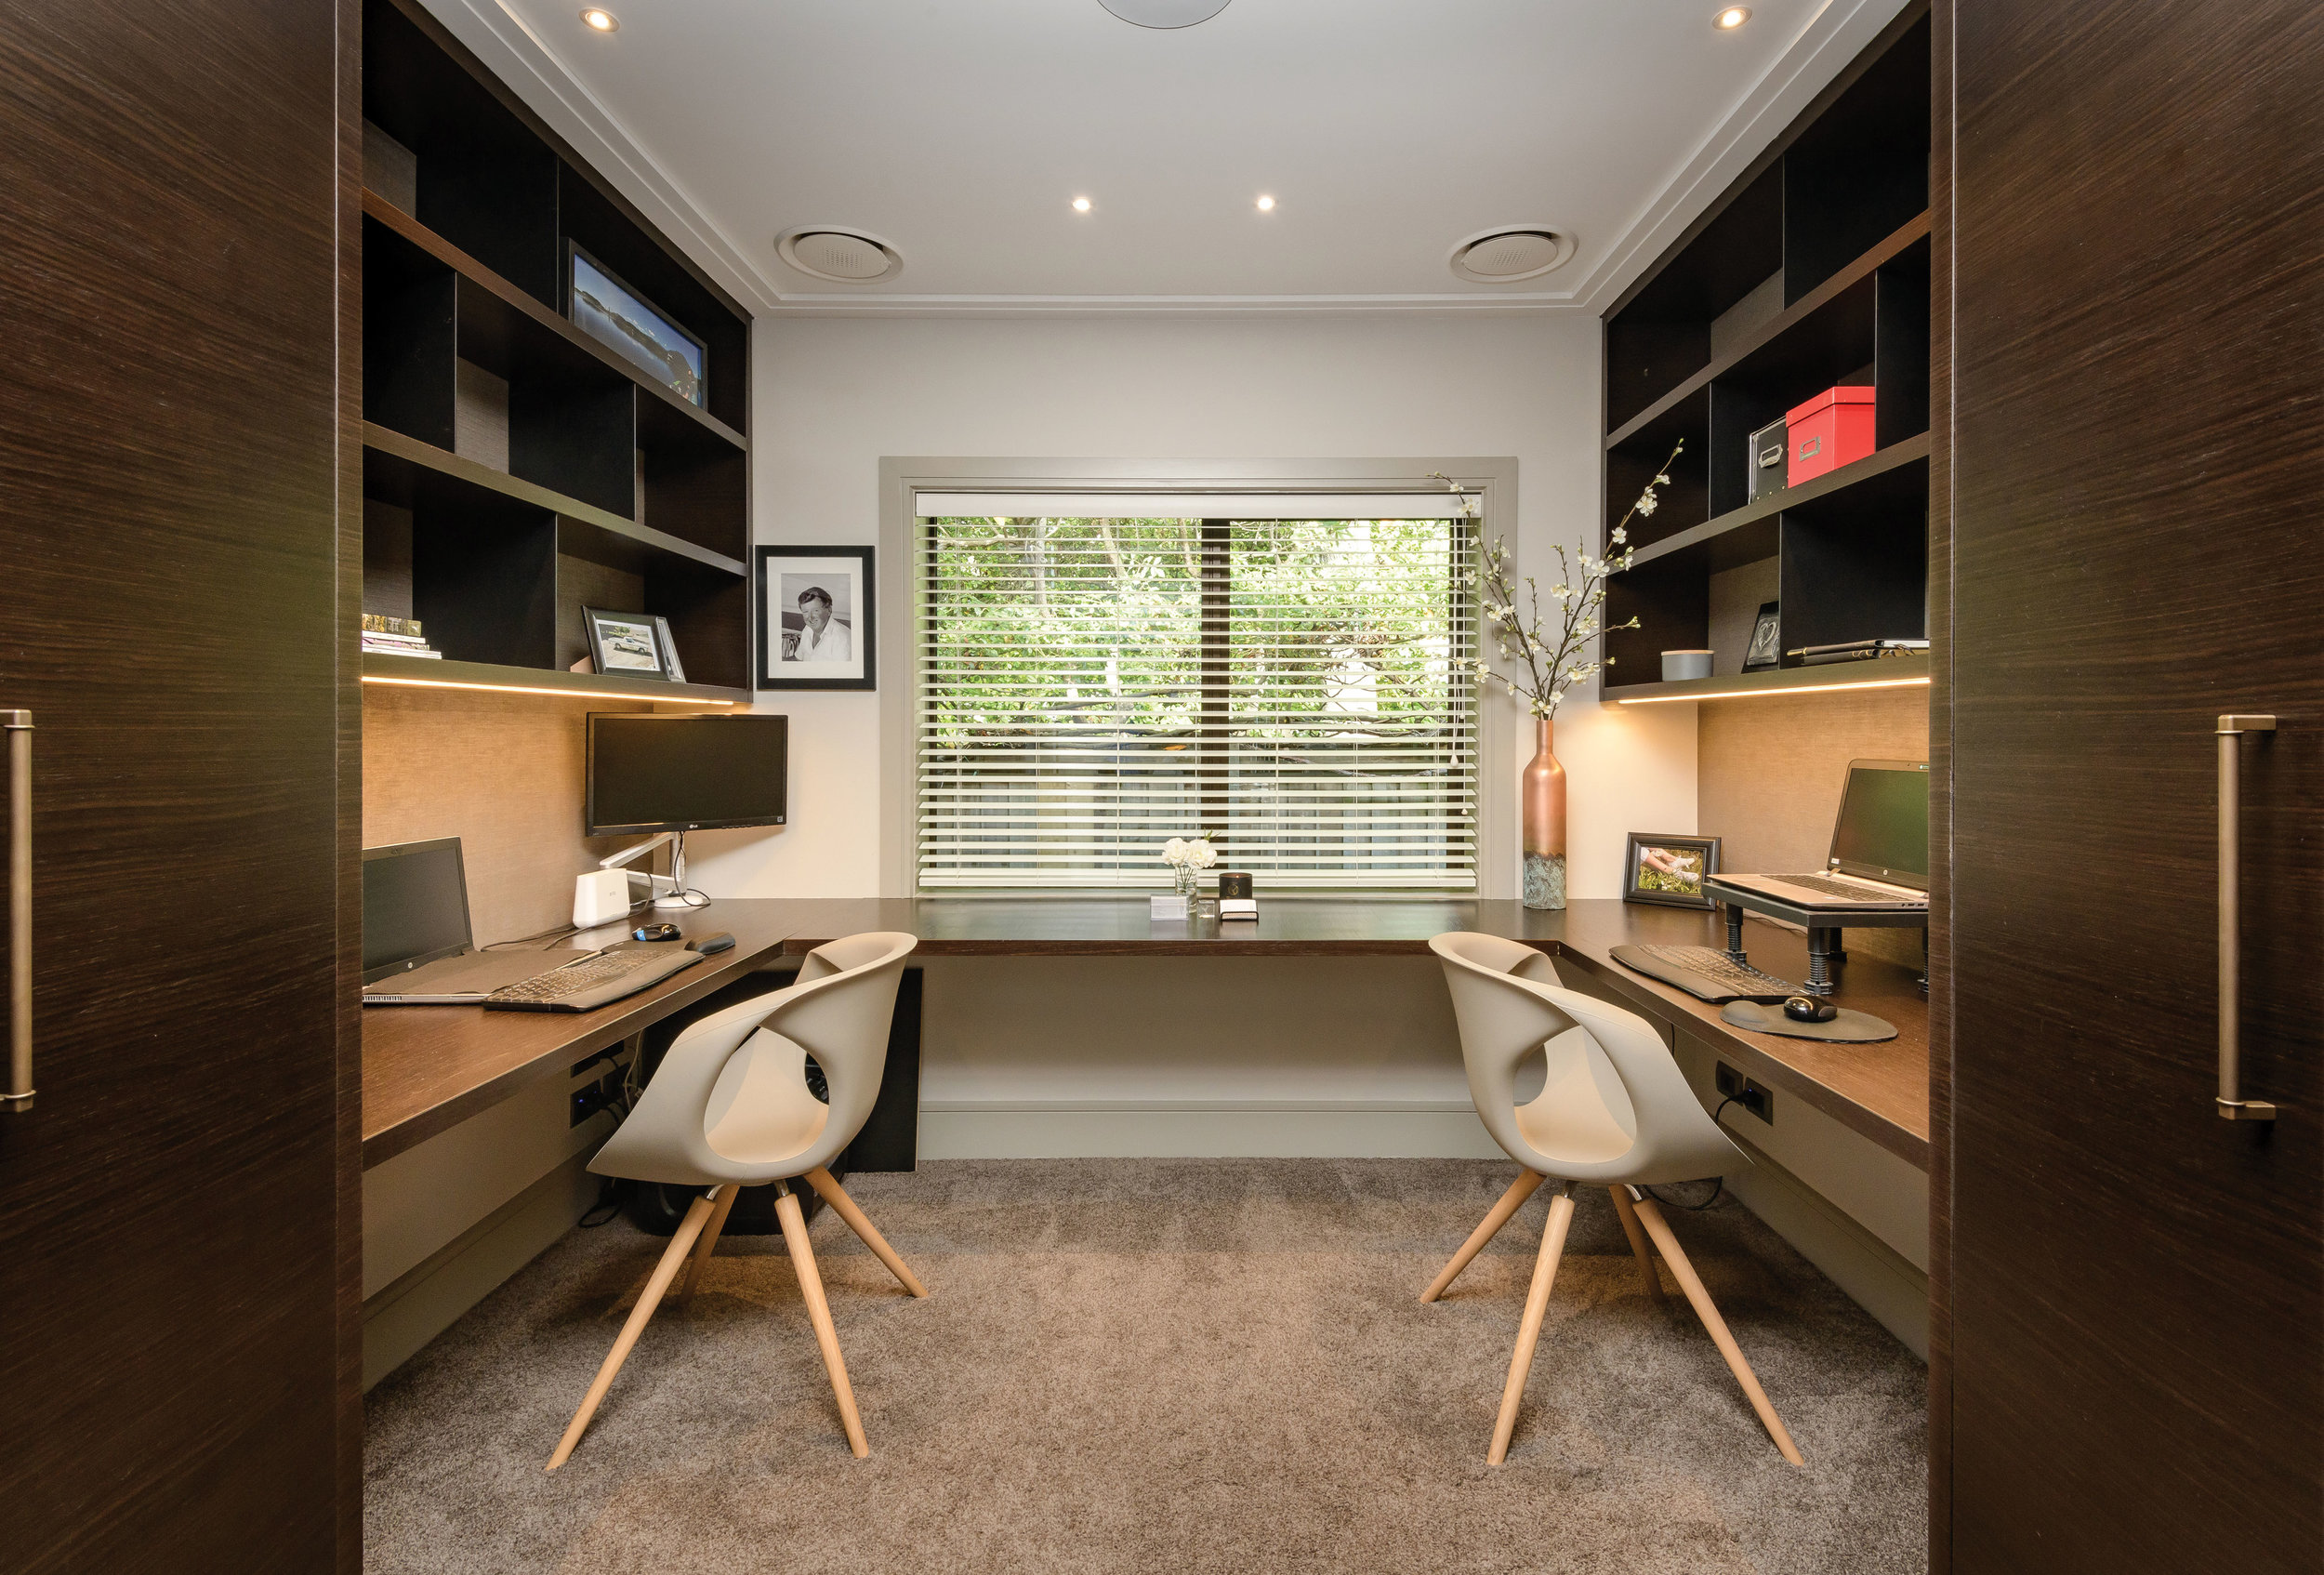 Office  A fifth bedroom has been converted into a his and hers office with built-in desk and storage manufactured and installed by Advanced Joinery. The office chairs are the Up chair by Tonon from David Shaw.